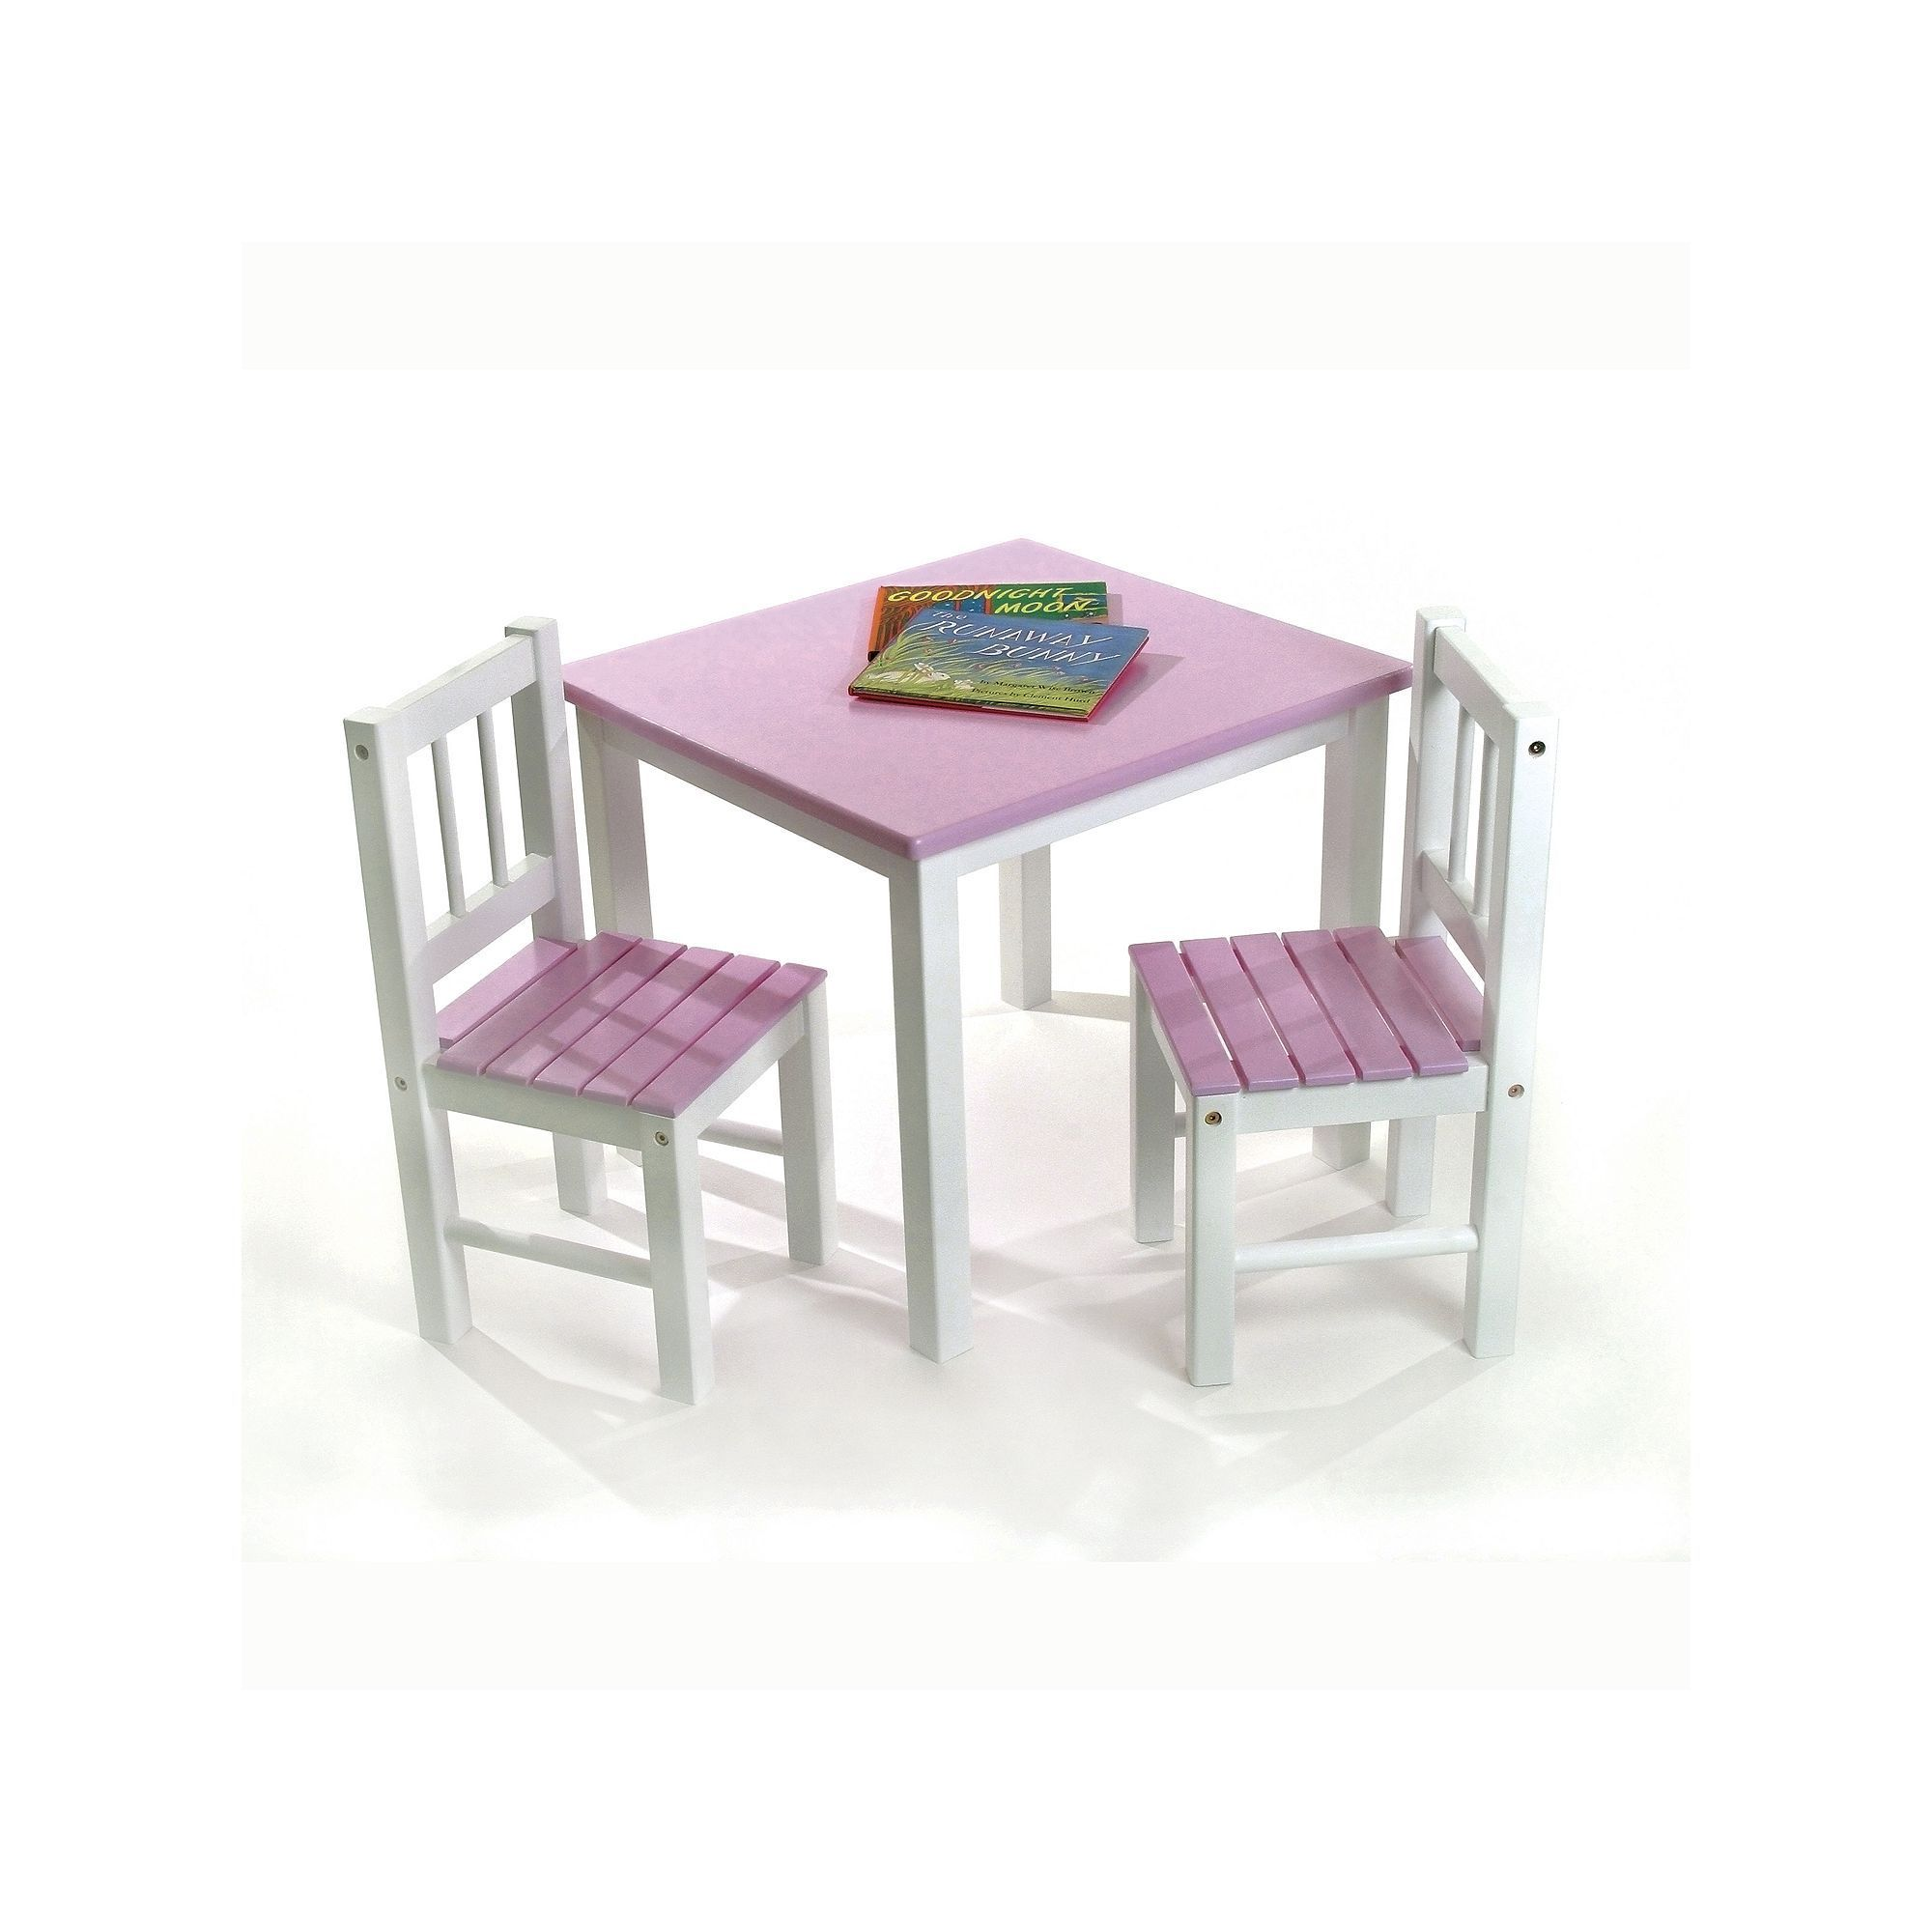 Childrens Table And Chair Set Lipper Children S Table Chairs Set Products Kids Table Chair